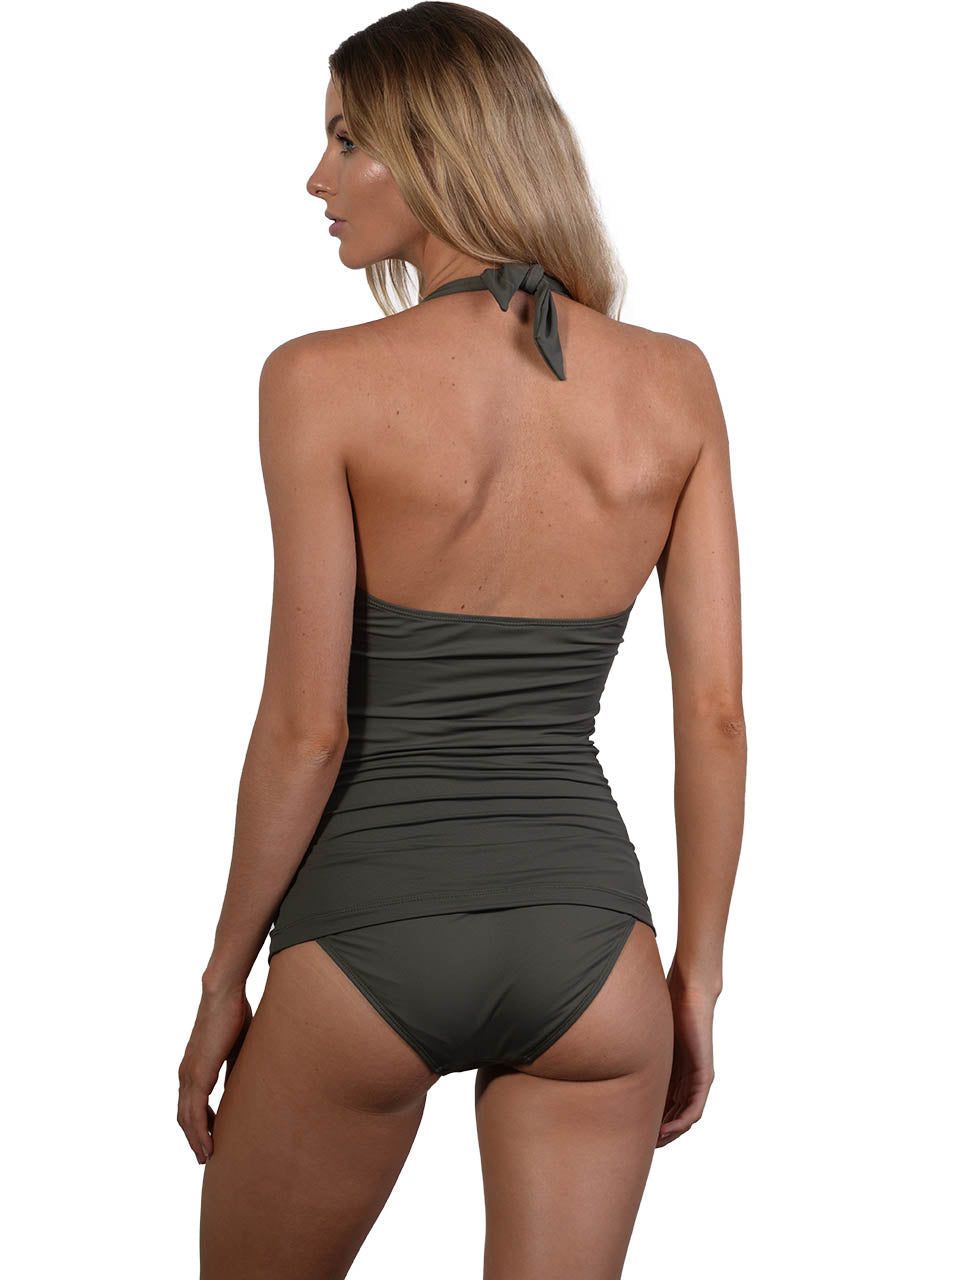 Back view of Seduce Keyhole Halter Singlet Bikini Top in Khaki